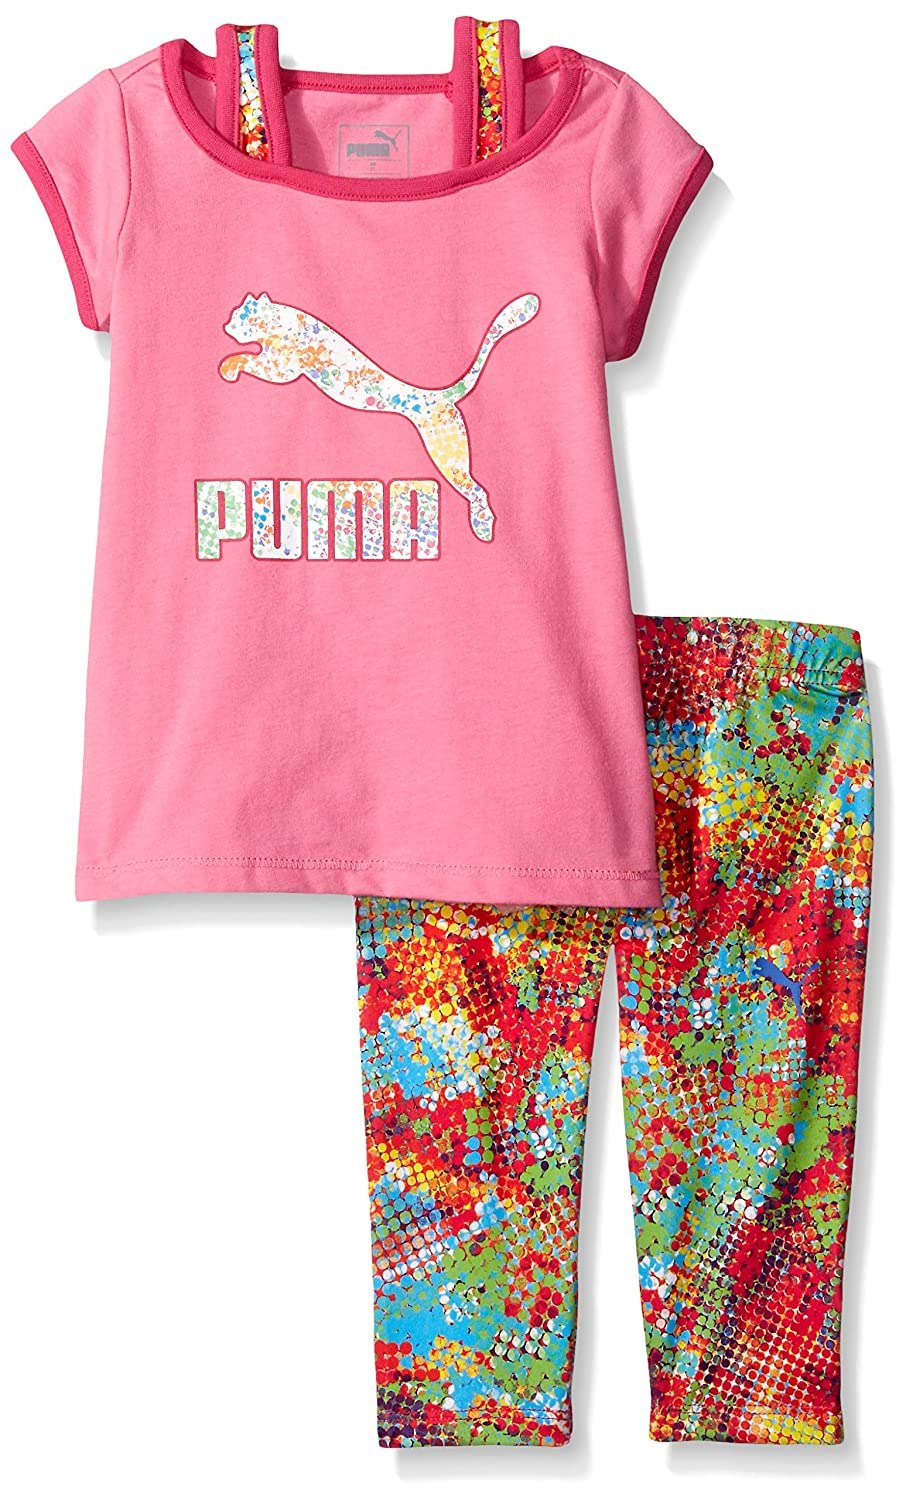 PUMA Girls' Tee Legging Set 51165132